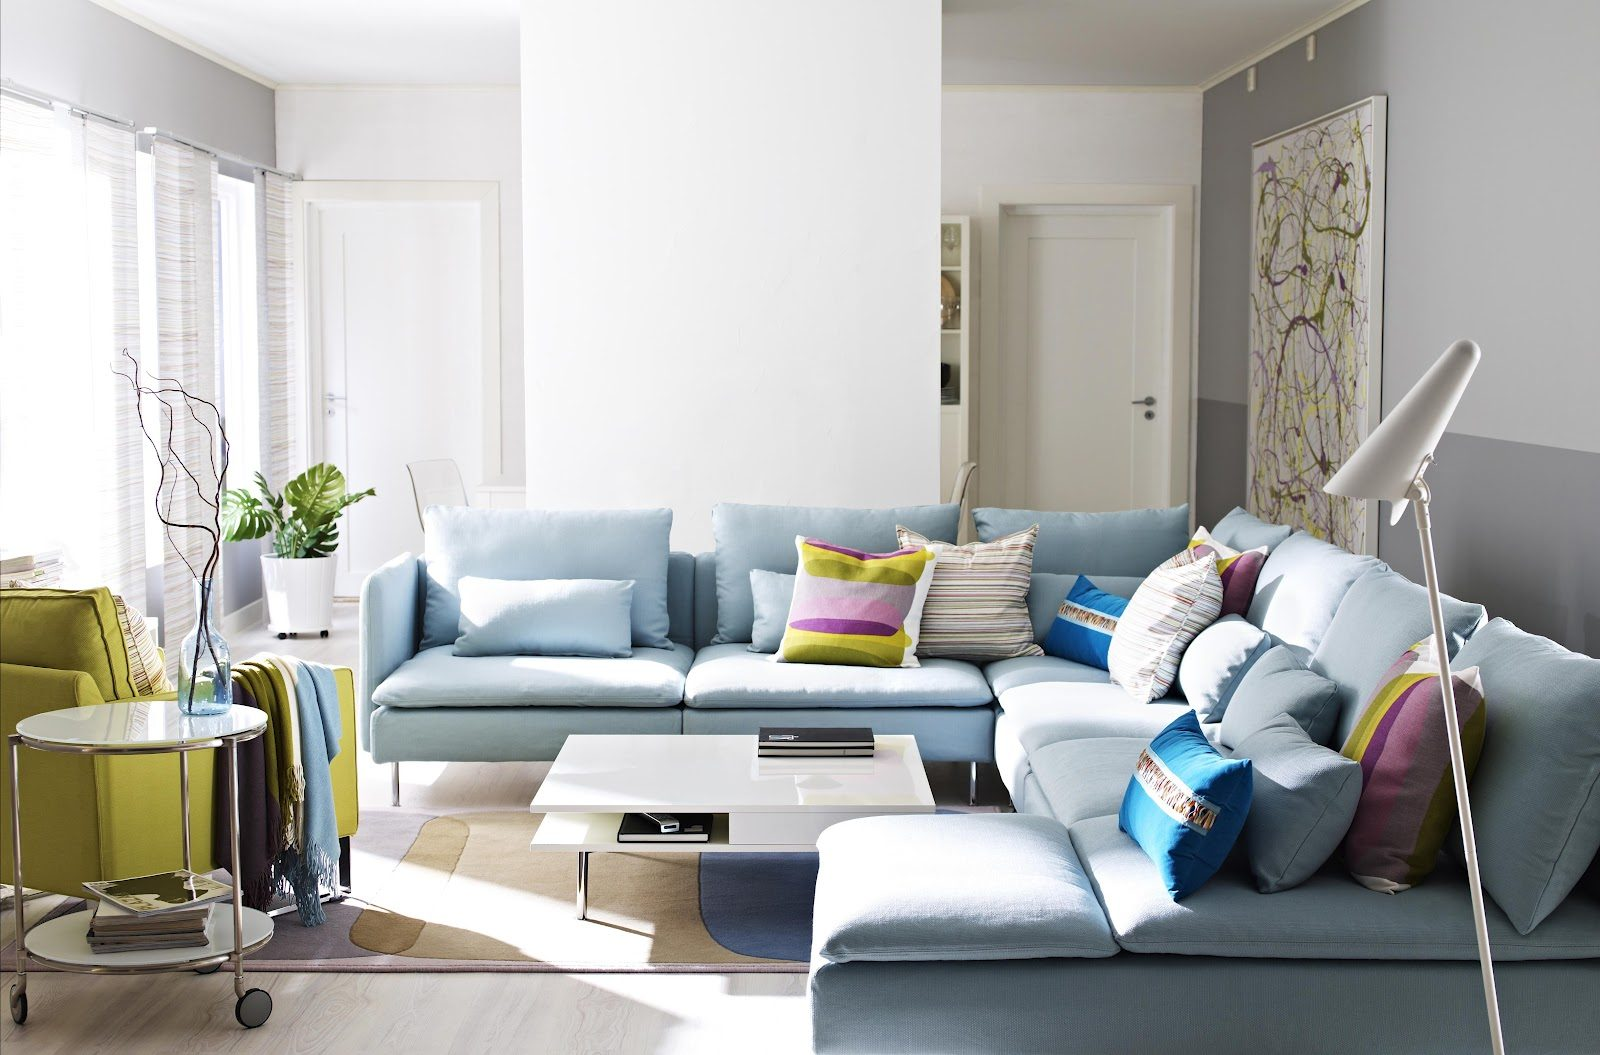 Turquoise furniture, yes please! It's one of my favorite colors in ...